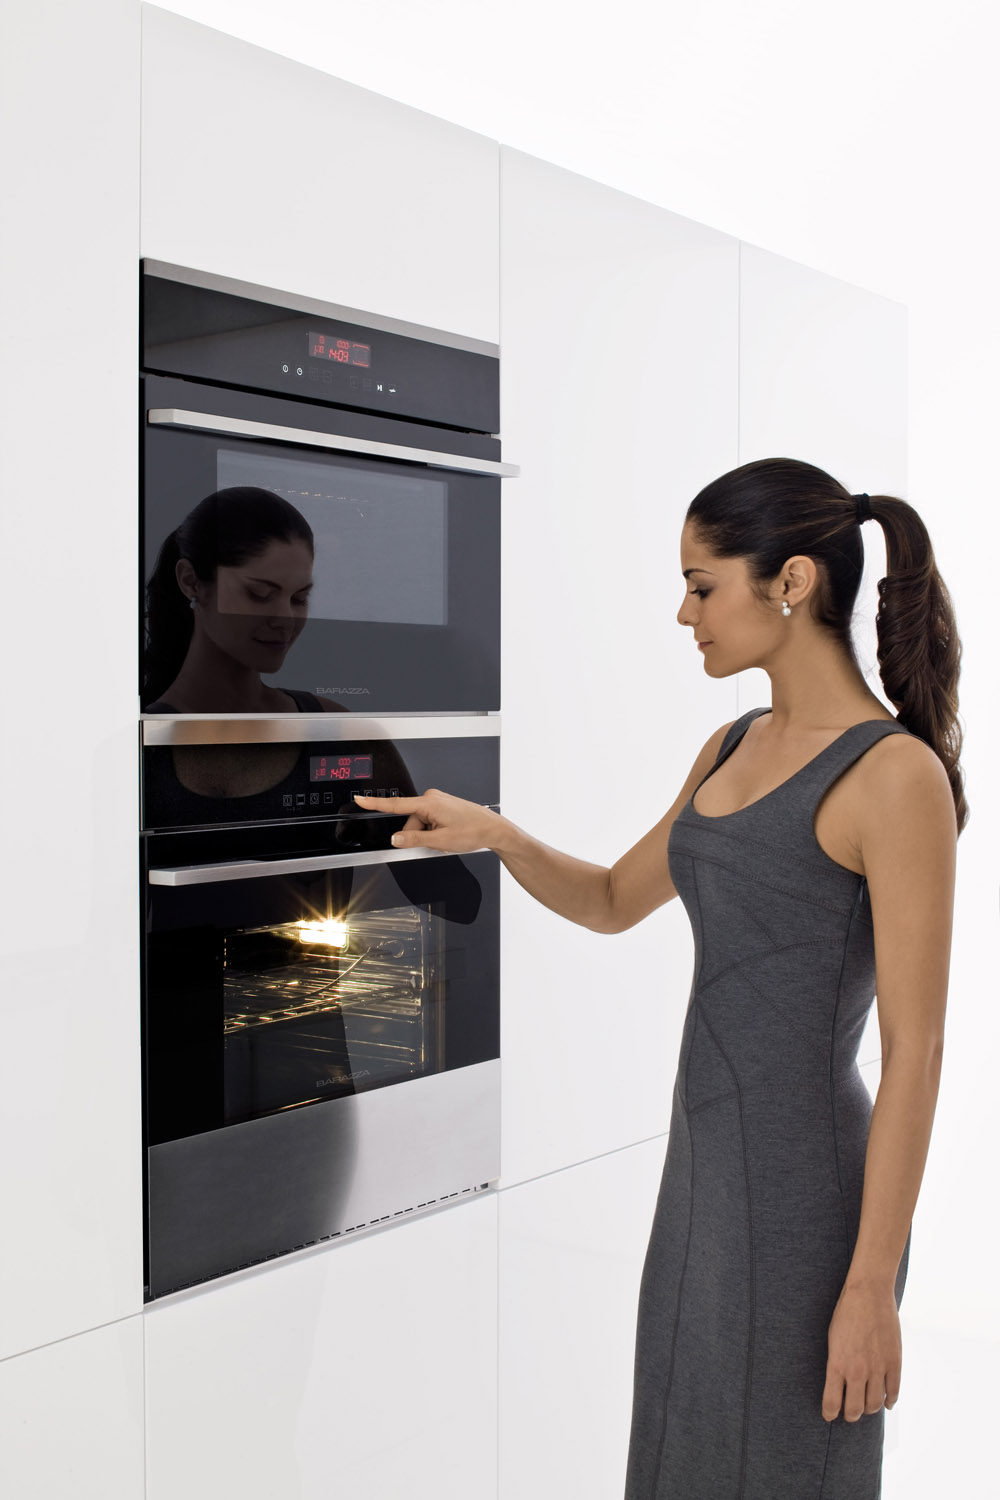 how to clean your oven using baking soda &amp